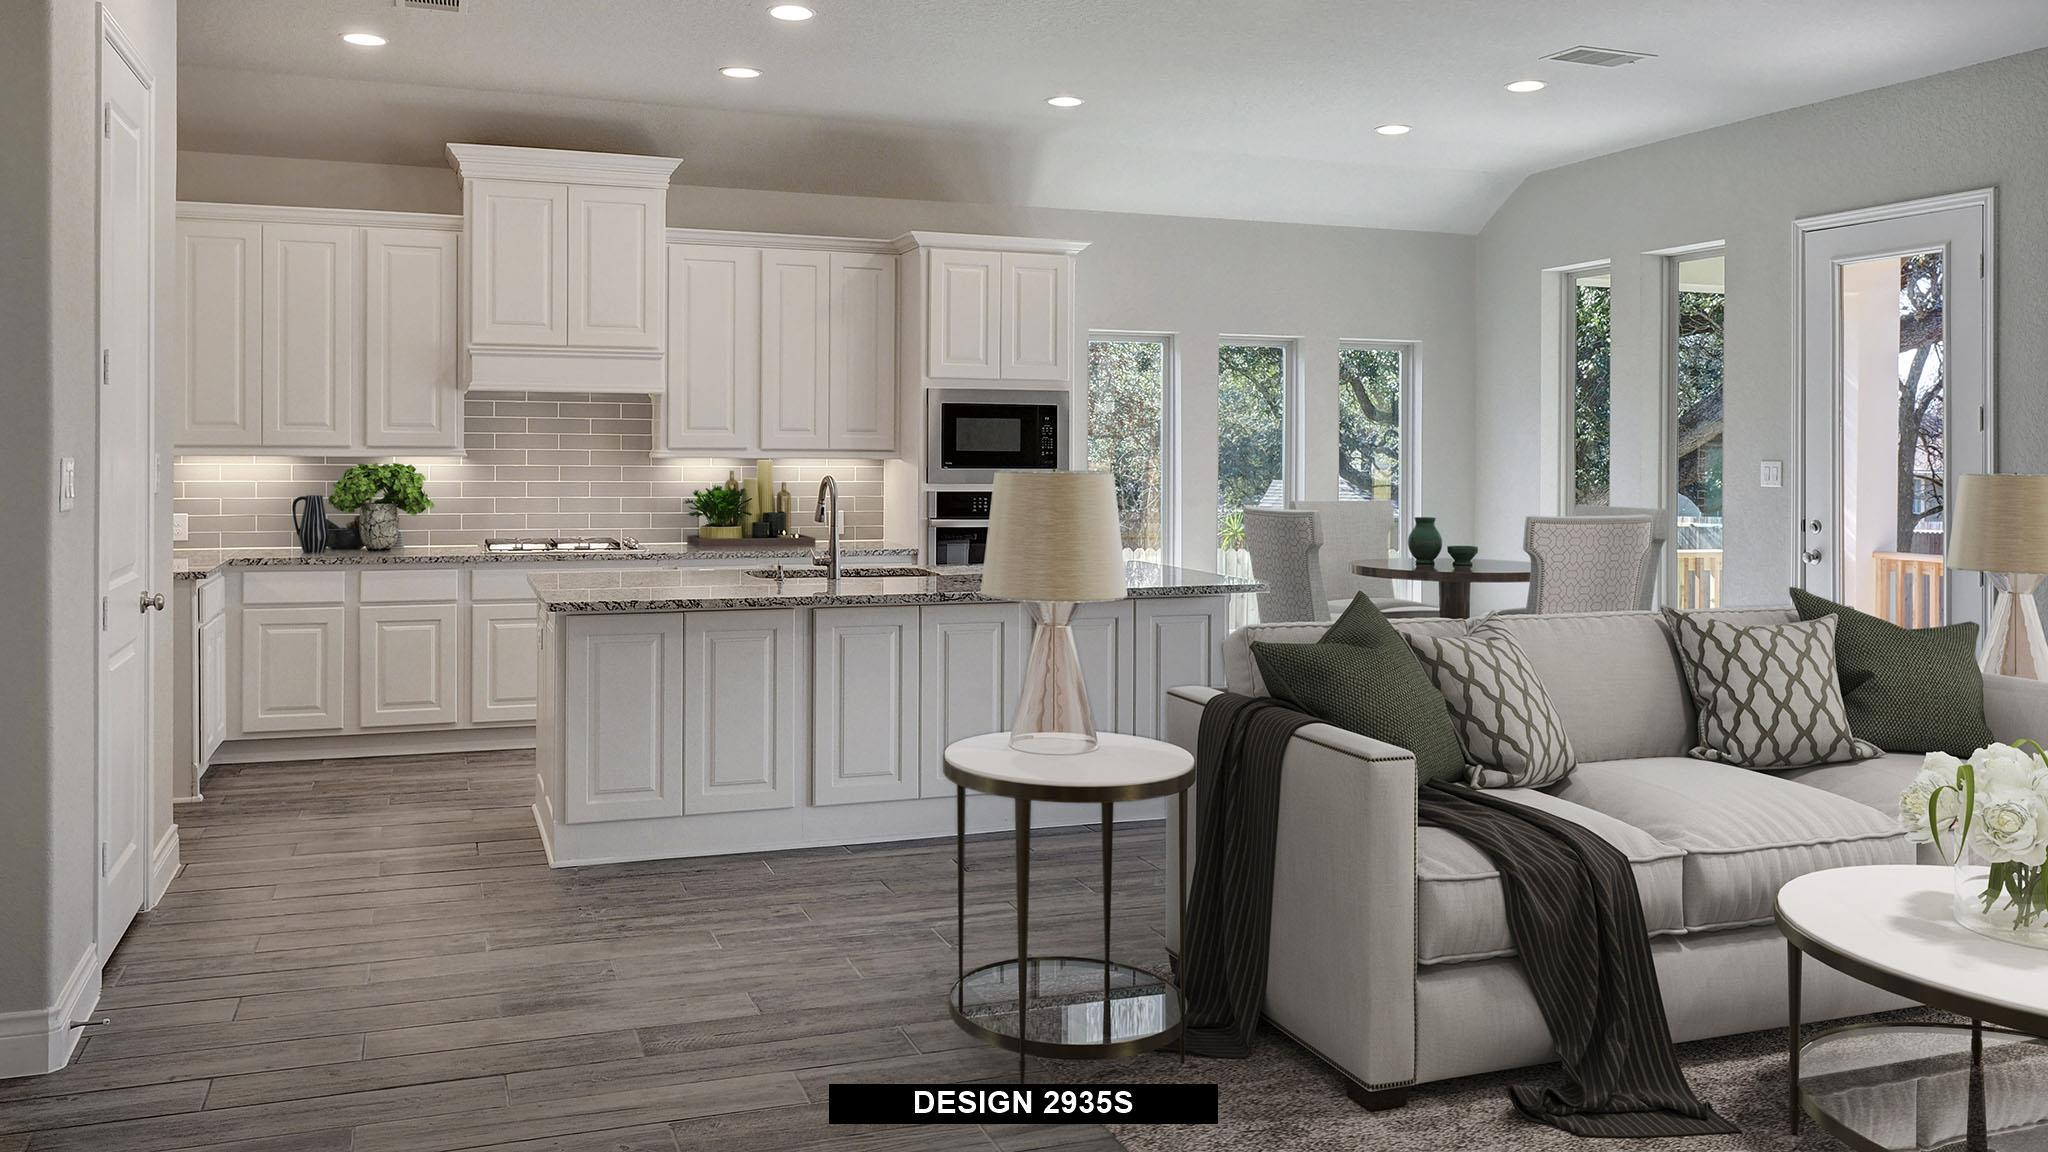 Living Area featured in the 2935S By Perry Homes in San Antonio, TX